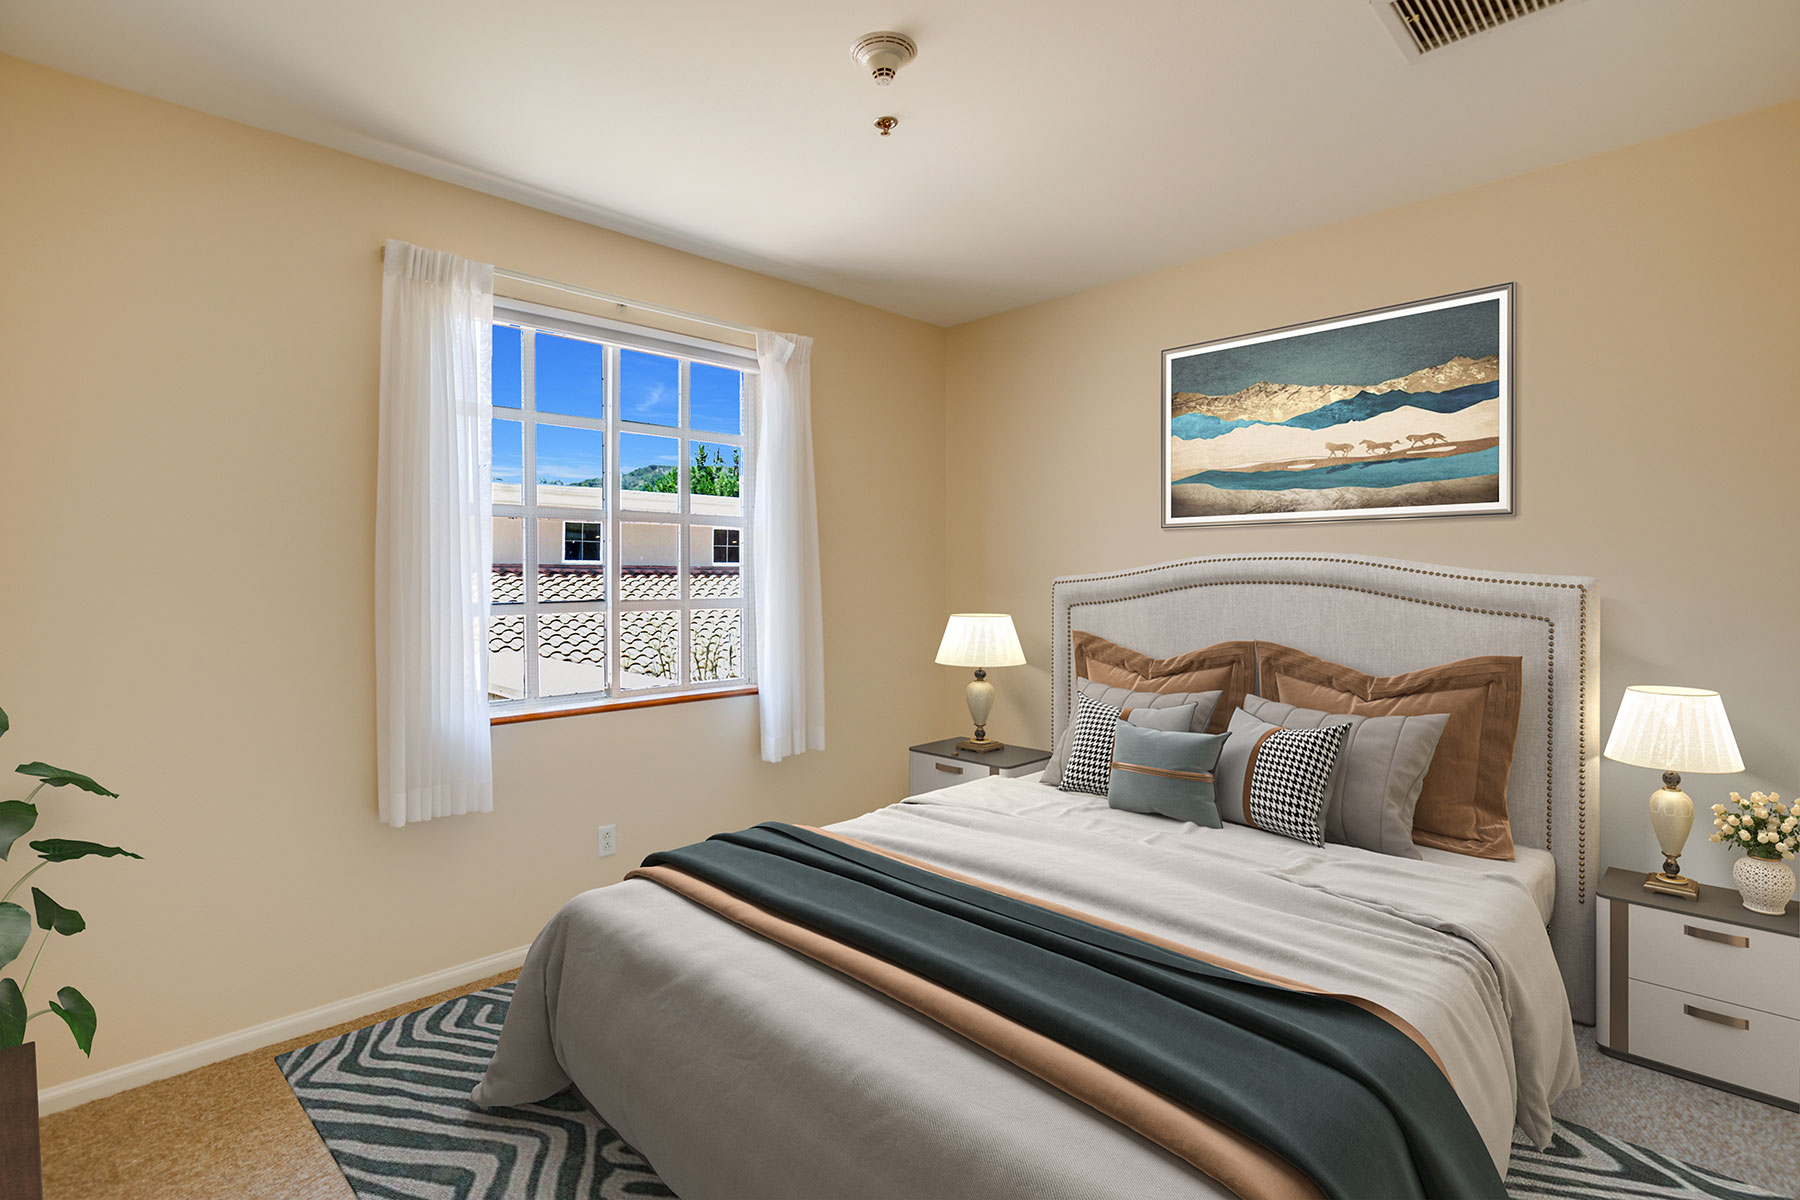 Assisted Living bedroom.